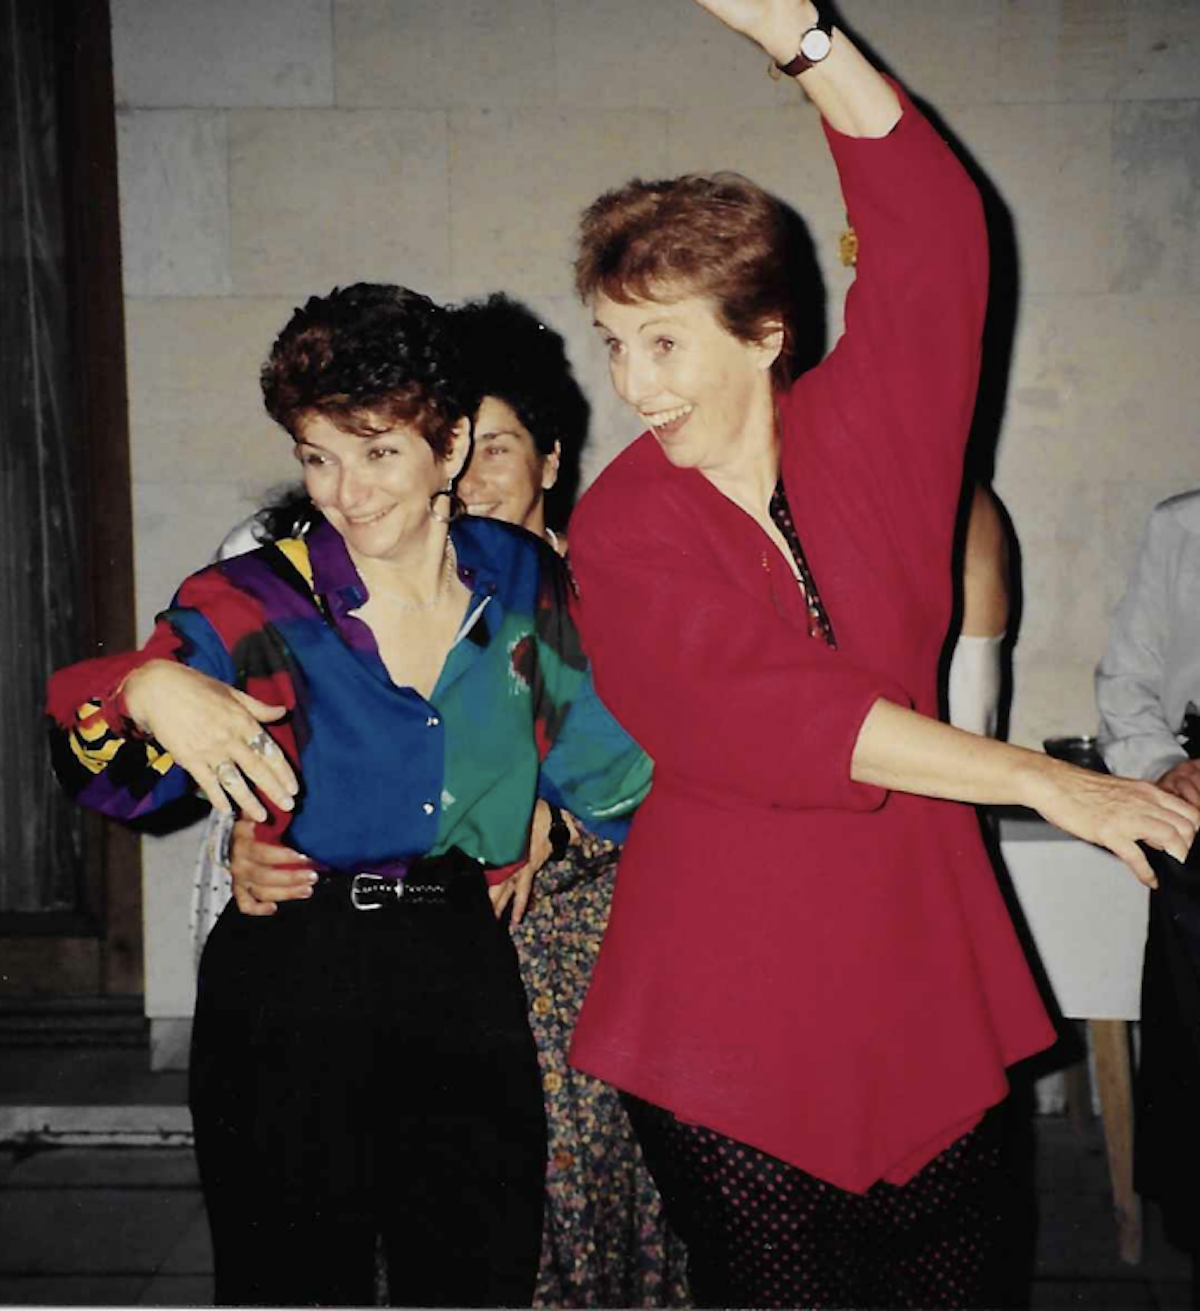 Sylvia Spring, filmmaker and co-founder of MediaWatch dancing with then Executive Director, Meg Hogarth at a women's event in Bulgaria 1994. Meg died last month in Toronto at 84.